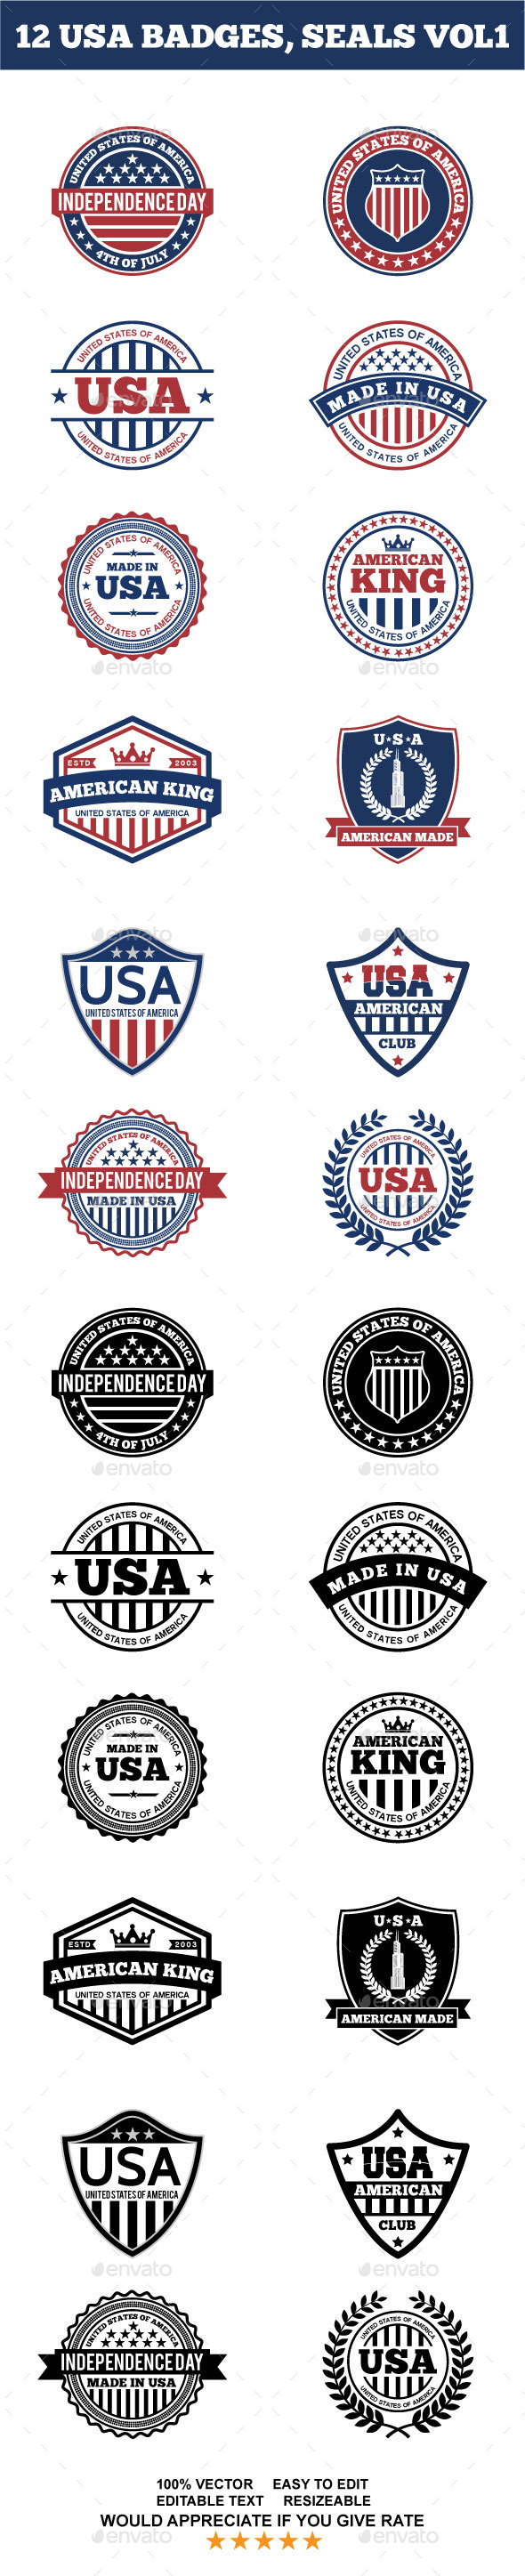 12 USA BADGES,  SEALS VOL1 - Badges & Stickers Web Elements